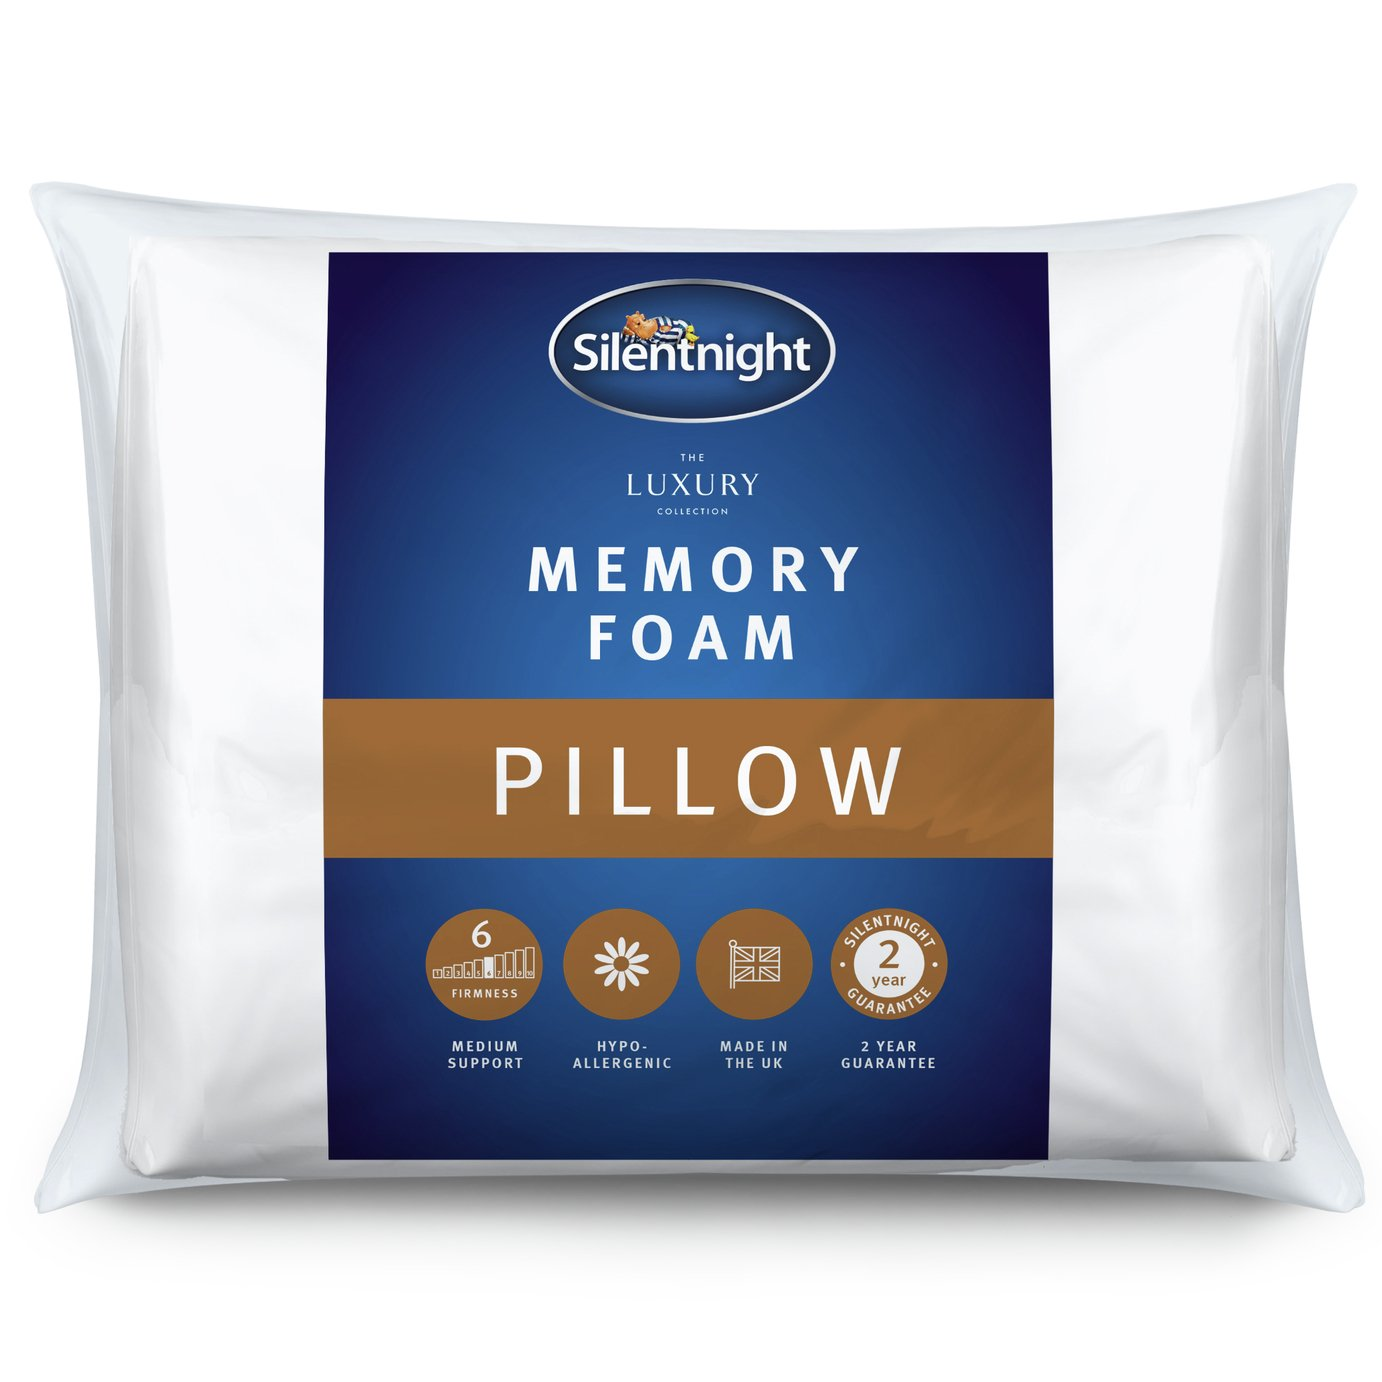 Silentnight Memory Foam Pillow